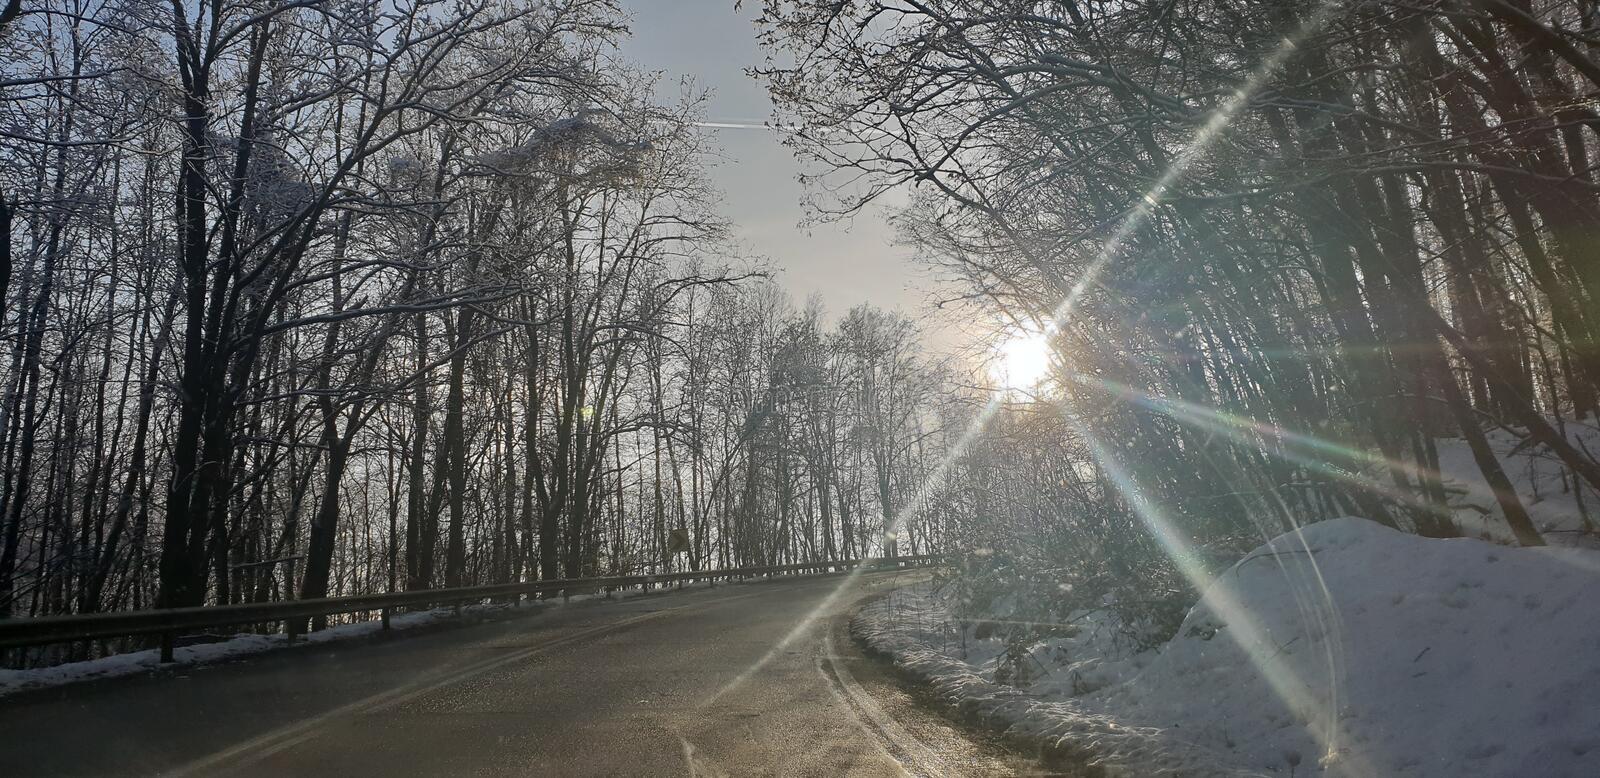 Winter road in early 2019 from cluj county to timisoara city highway  and rural road. Winter road early 2019 clun cluj county timisoara city highway stock photography